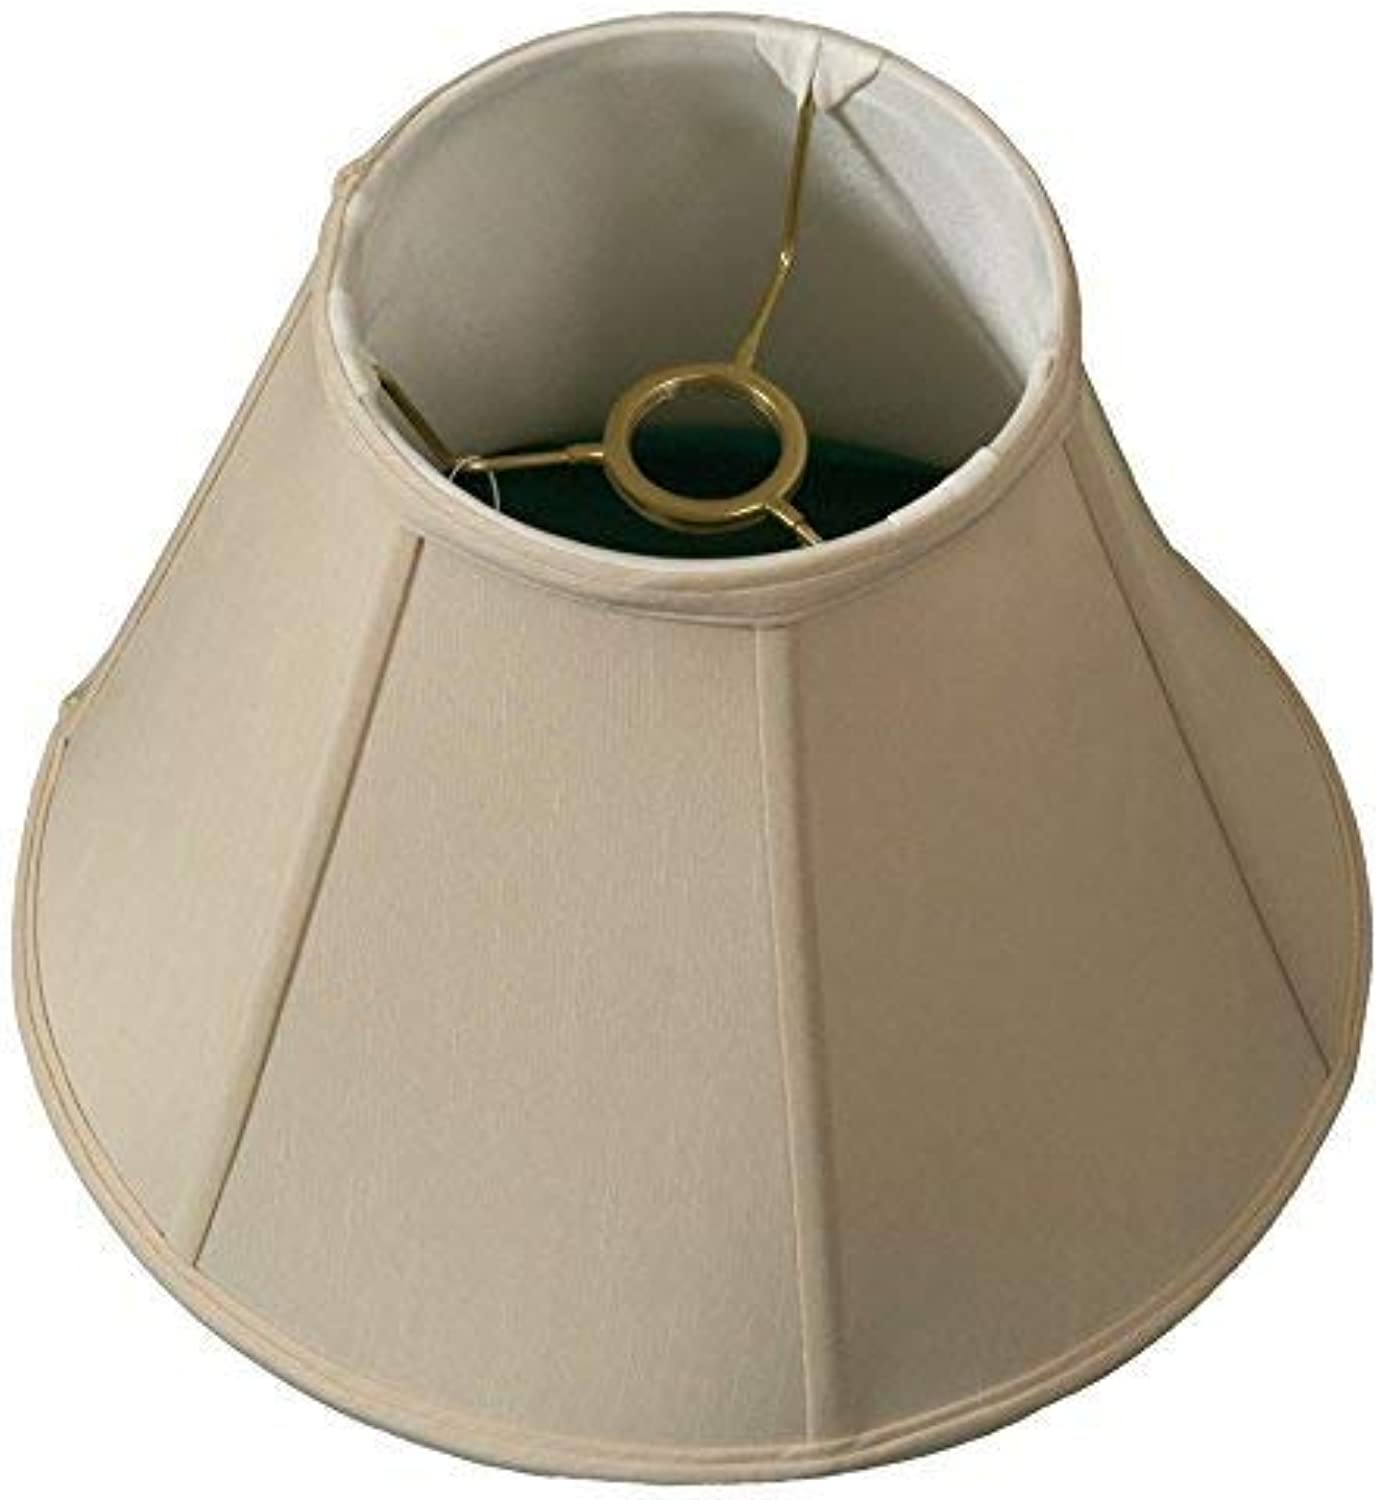 Royal Designs deep Empire Lamp Shade, Beige, 6 x 12 x 9.25, UNO Floor Lamp